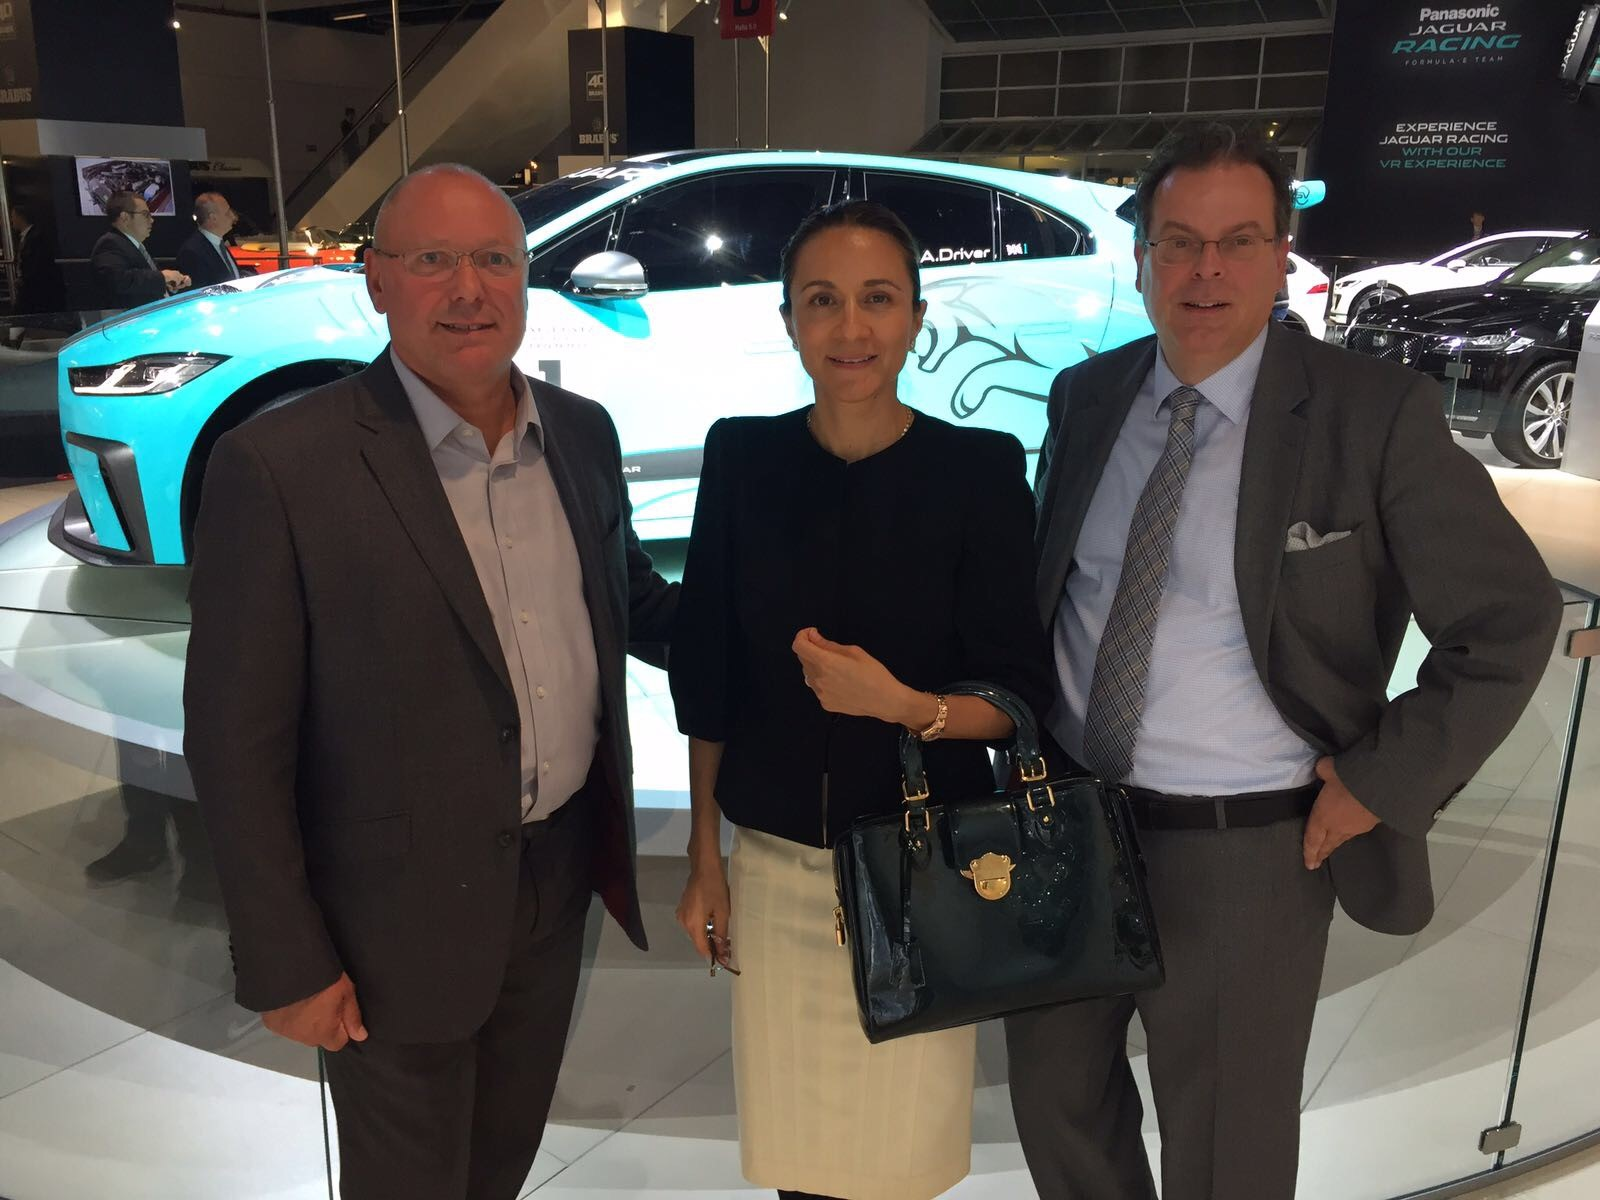 From left to right: The LIASE Group's Adam Pumfrey, Managing Director U.K.; Vanessa Moriel, Managing Director Asia; and Wolfgang Doell, President and Managing Director Europe at the Jaguar Booth.